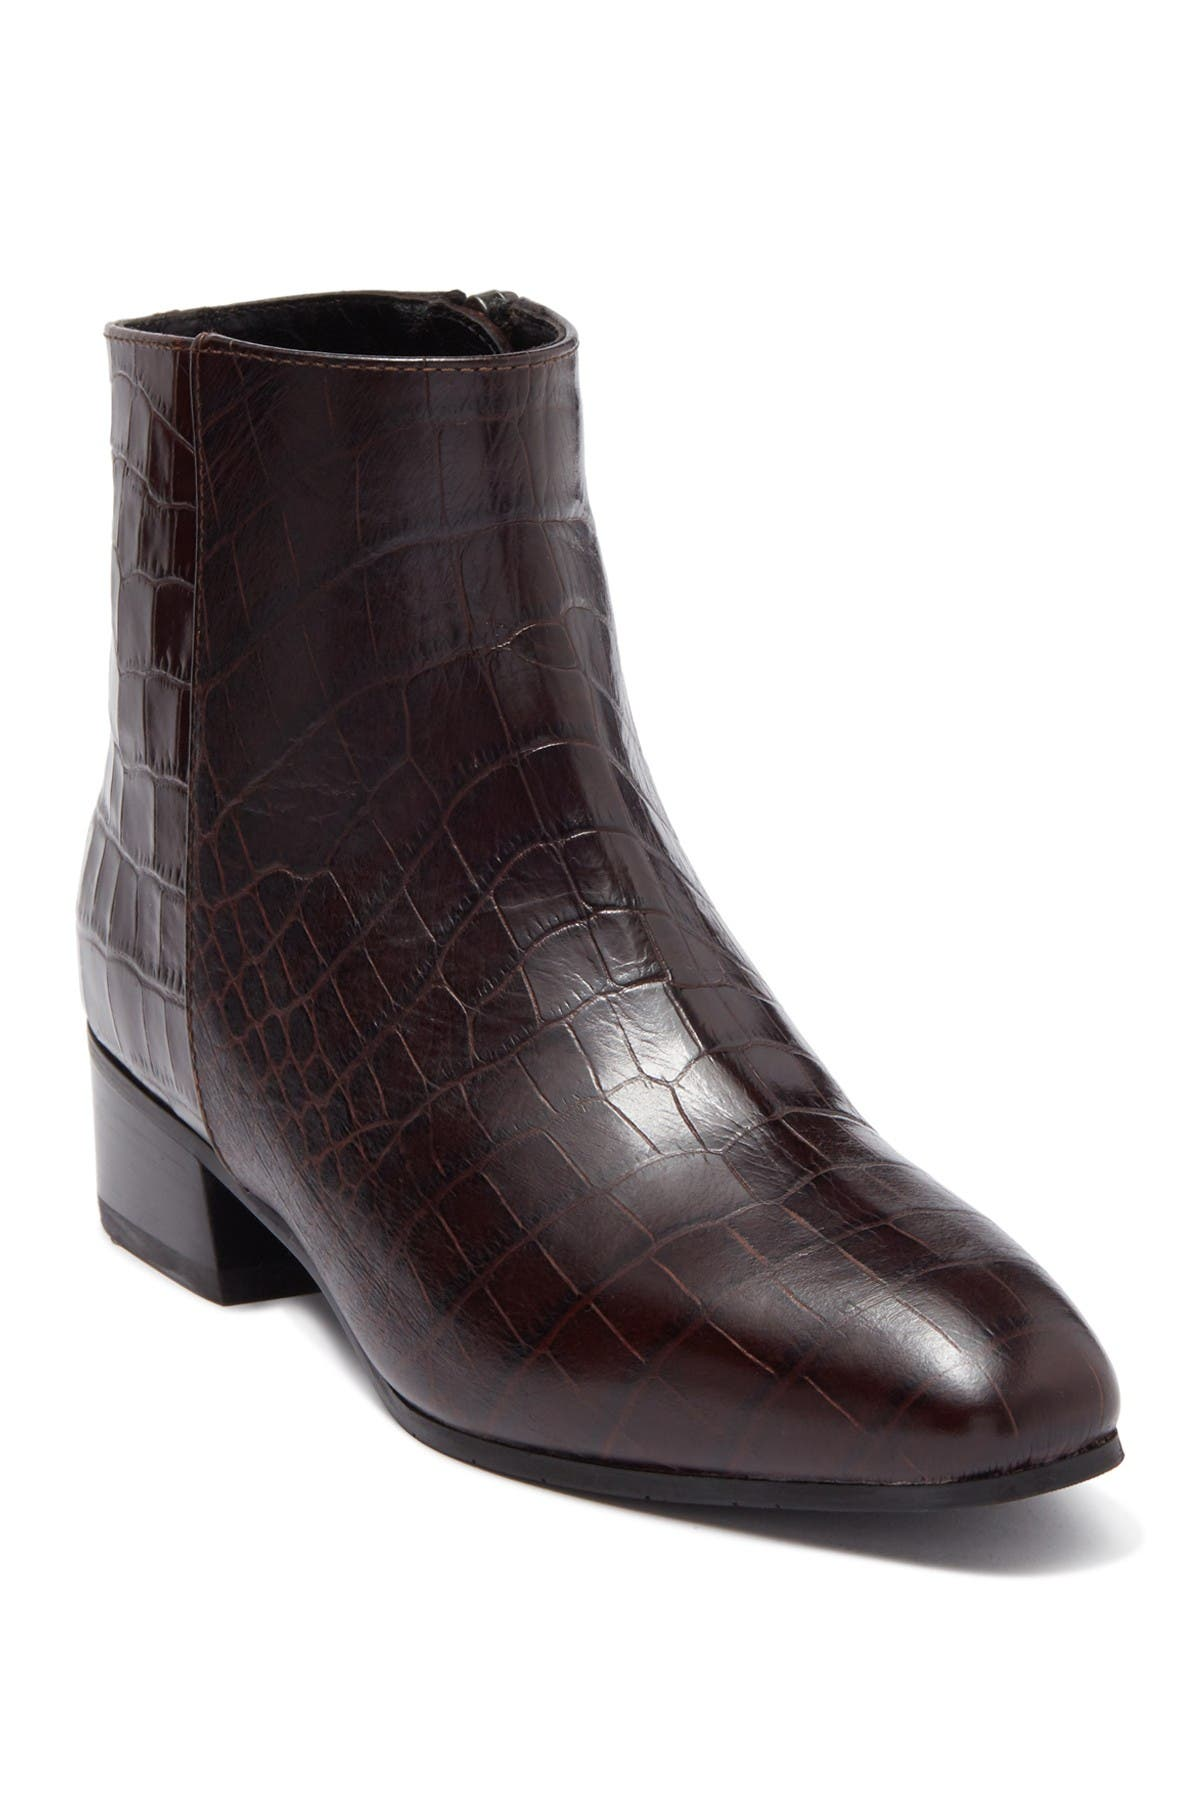 Image of Aquatalia Fuoco Croc Embossed Bootie